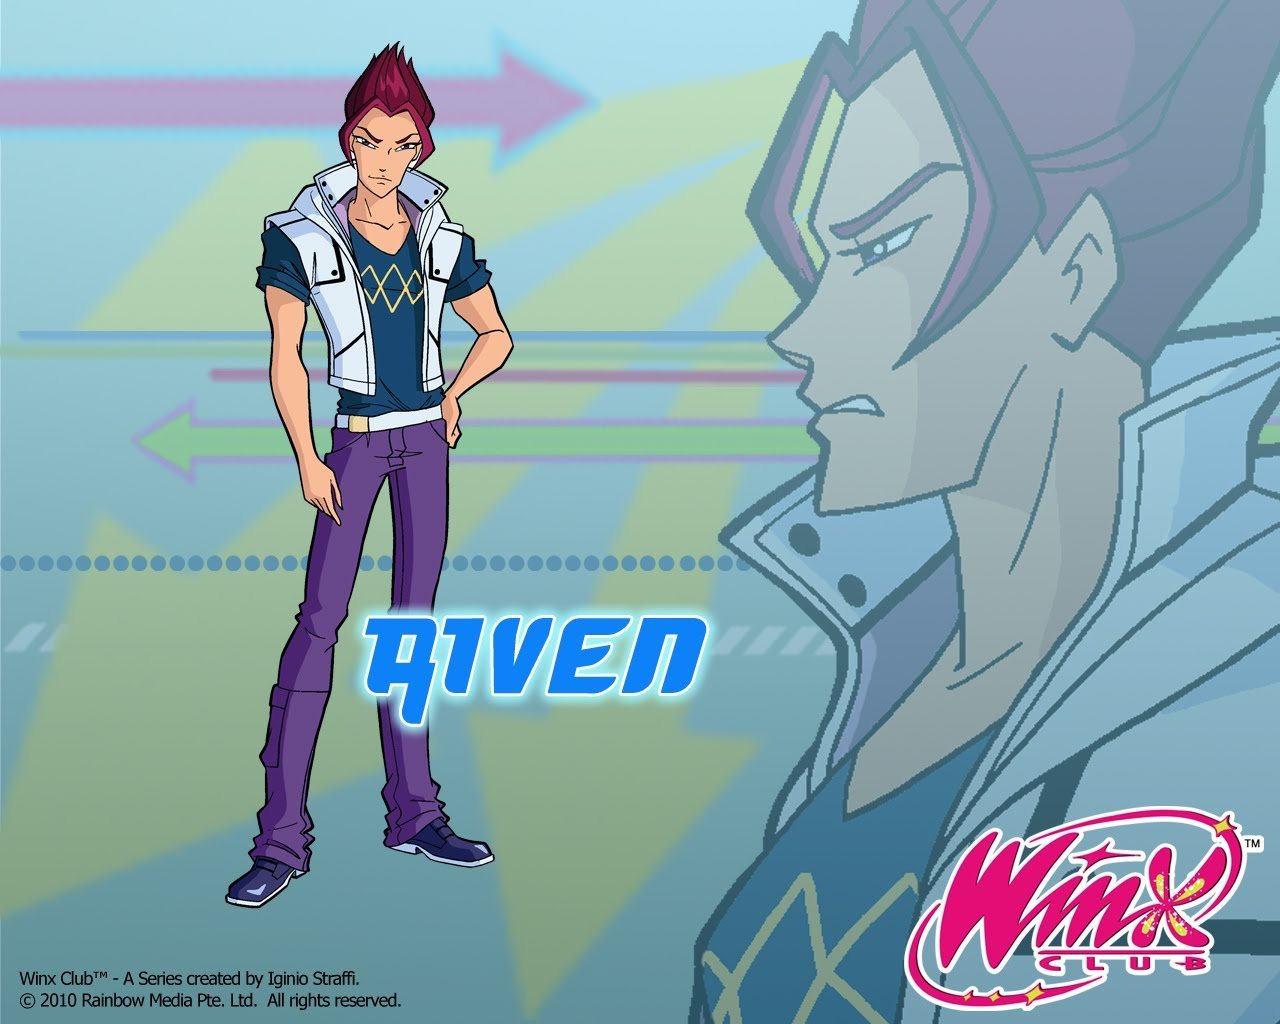 http://s2.manifo.com/usr/0/04d2/c7/manager/riven-the-winx-club-13600460-1280-1024.jpg